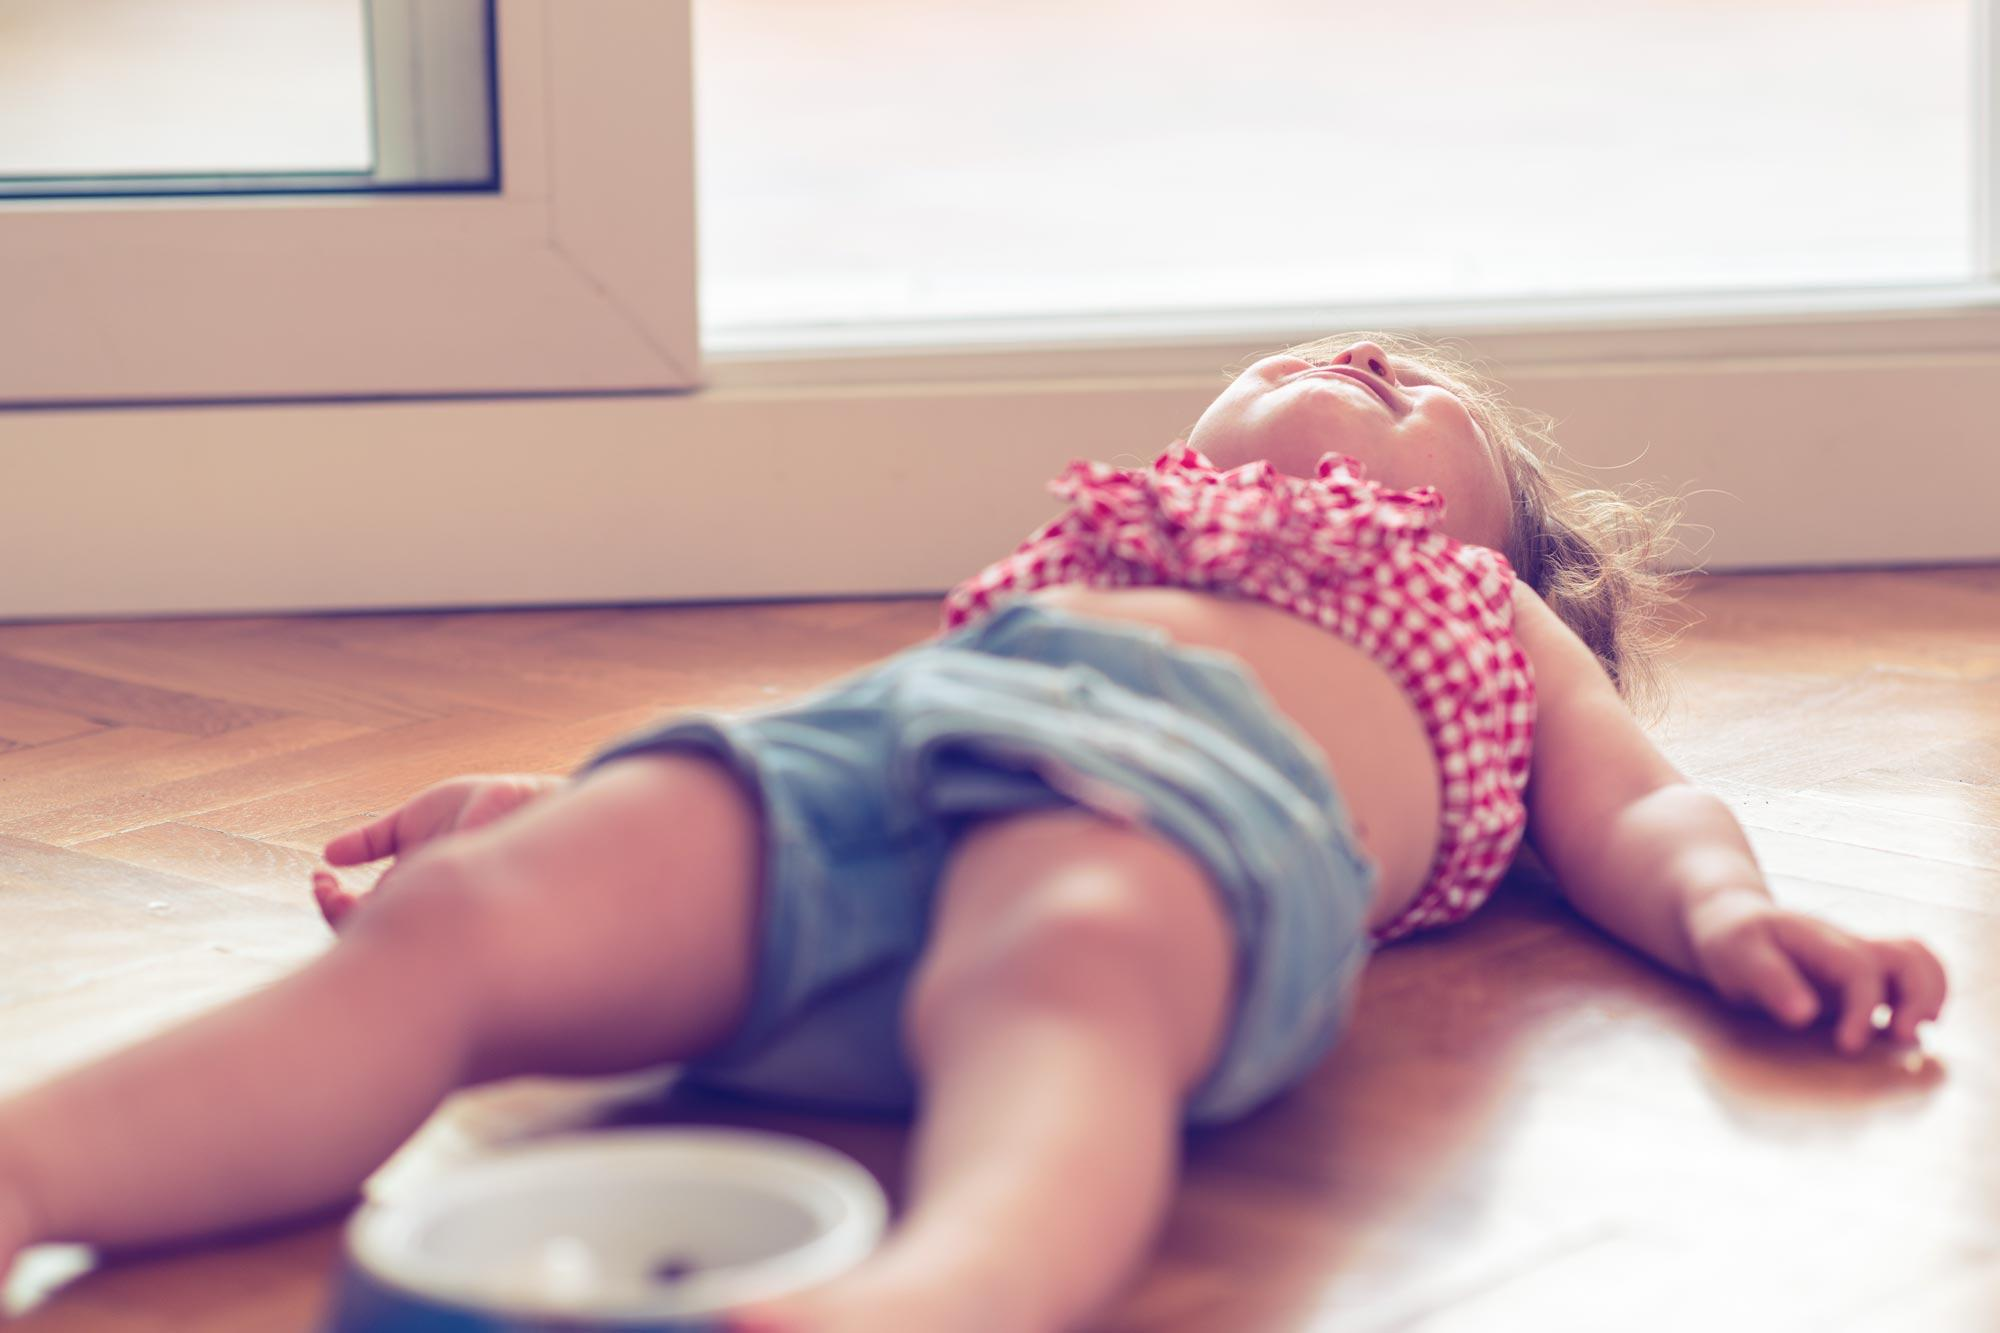 Psychologist: Why Posting Video Is a Lousy Response to Your Toddler's Meltdown